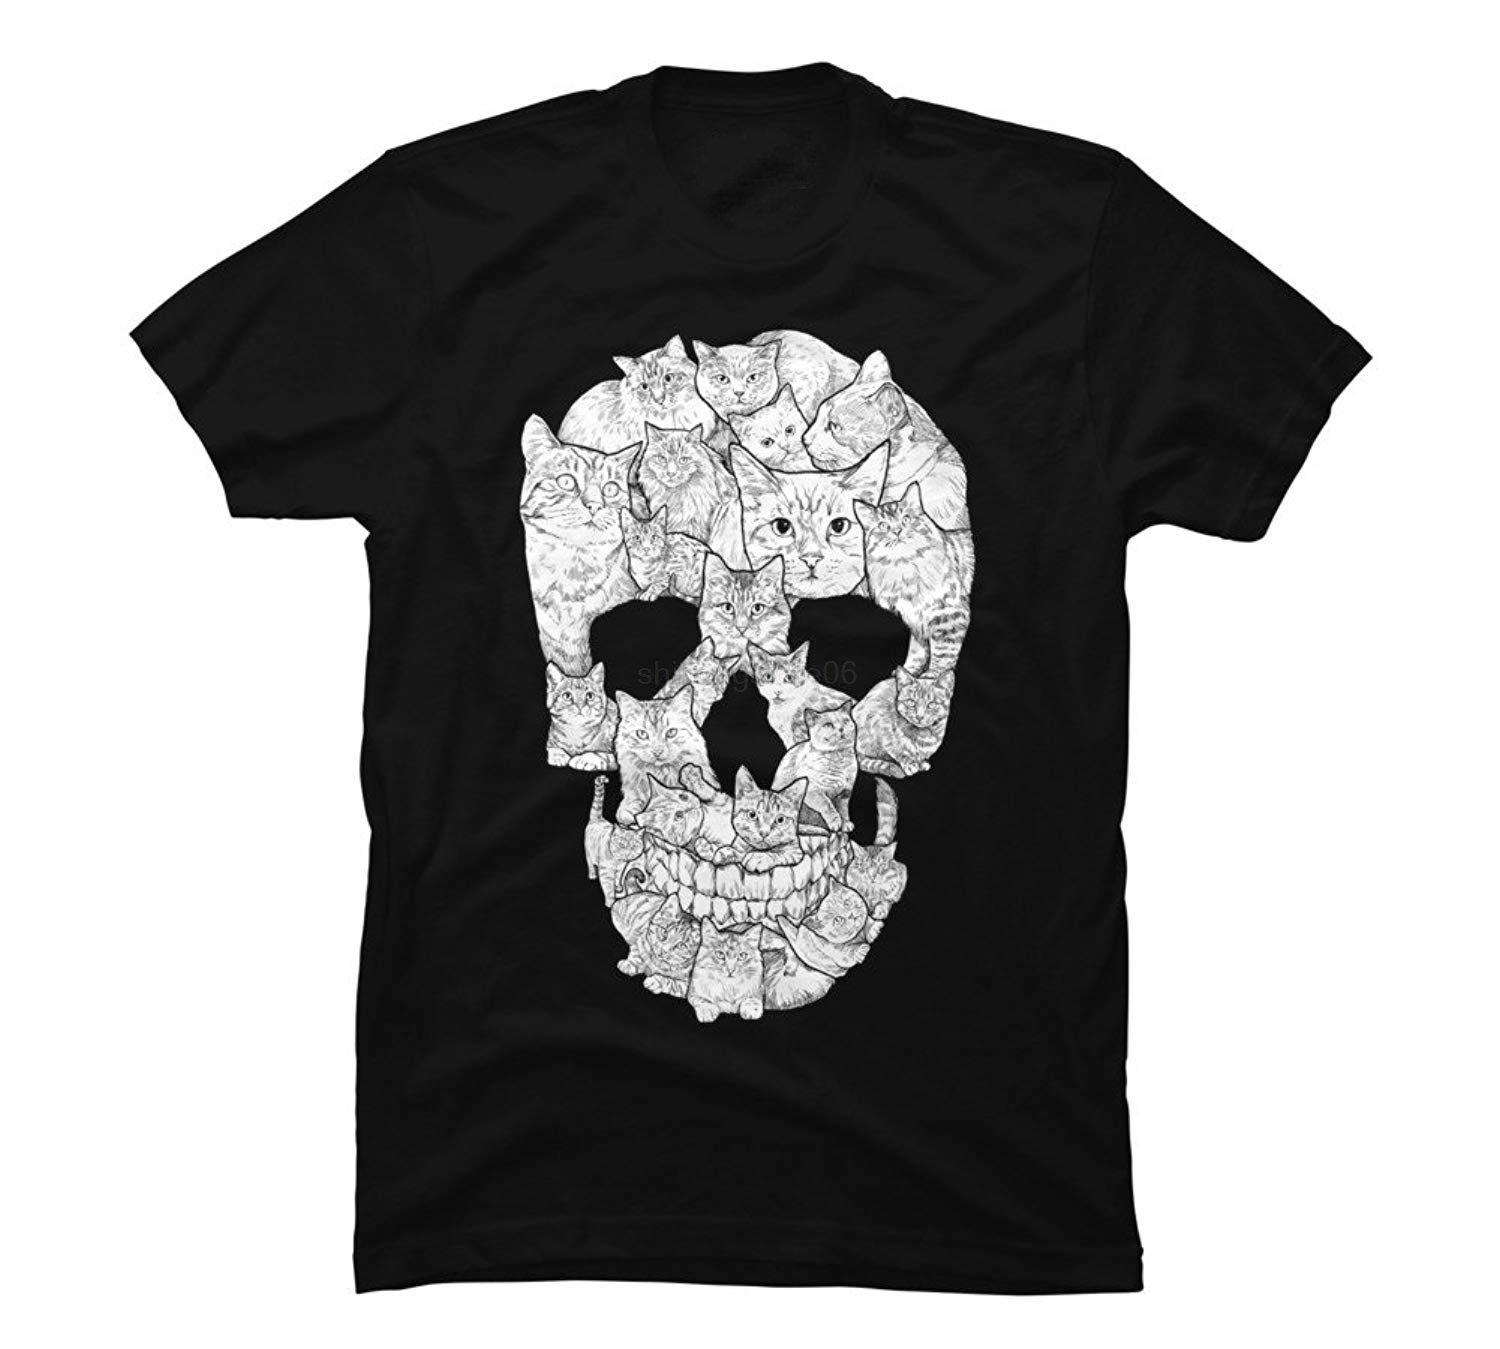 Design By Humans Sketchy Cat Skull Men's Graphic T Shirt